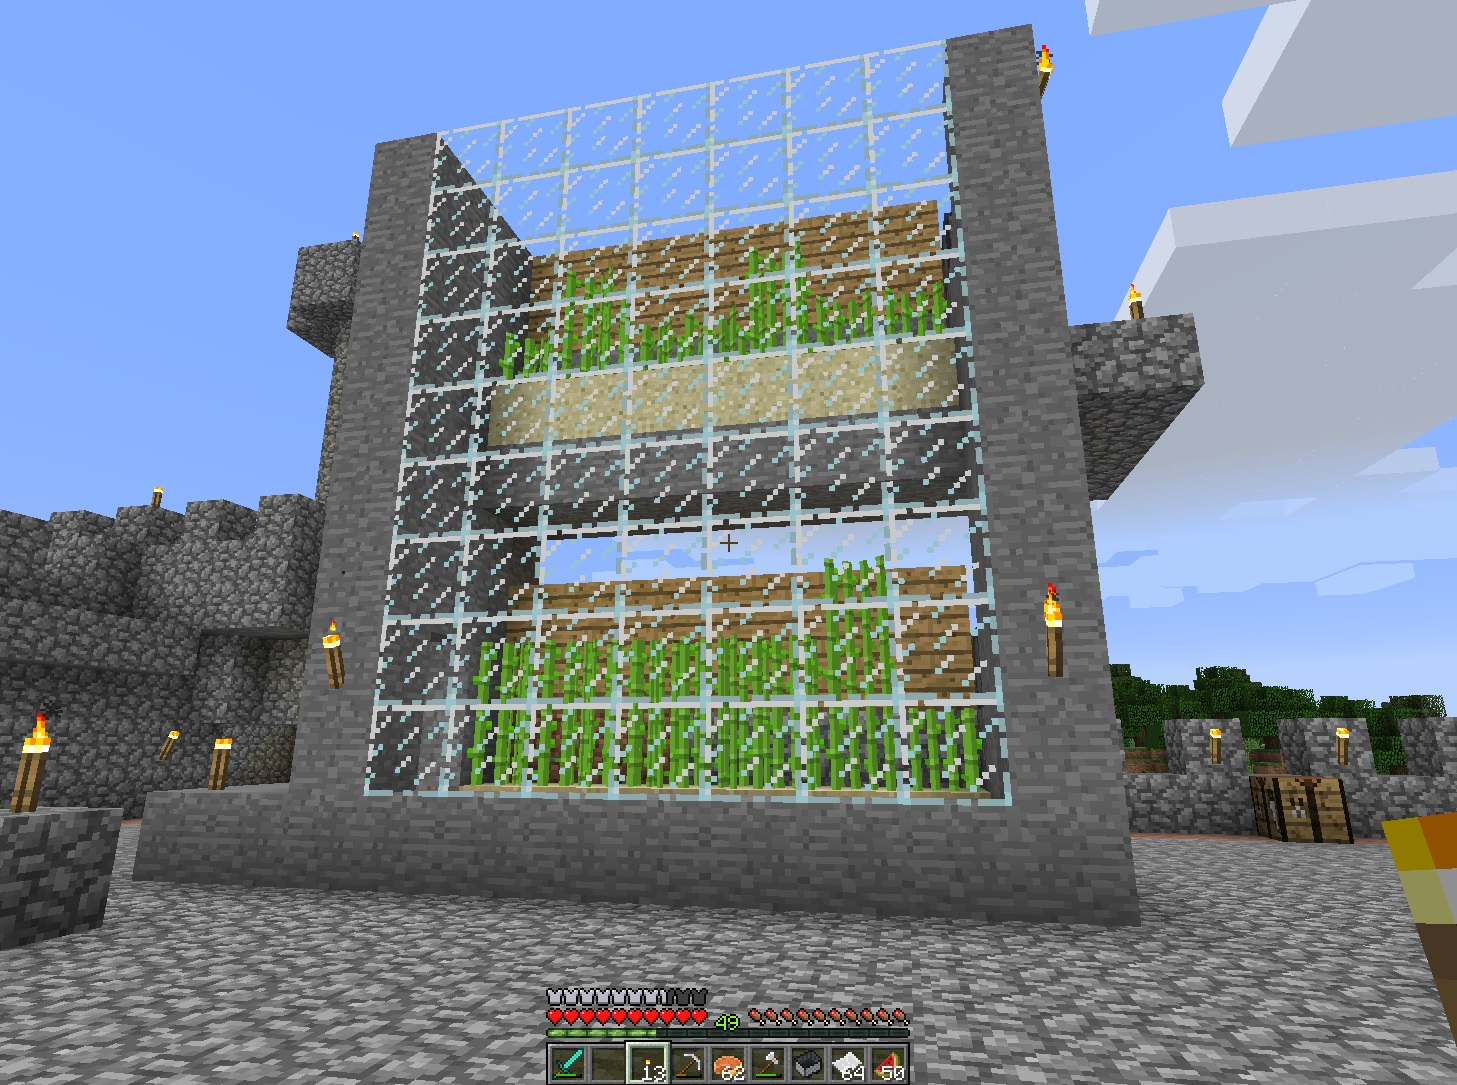 Aesthetic lighting minecraft indoors torches tutorial Minecraft Redstone Automated Sugar Cane Farm Minecraft Wonderhowto Minecraft And Bringing Light To Dark Places The Ancient Gaming Noob